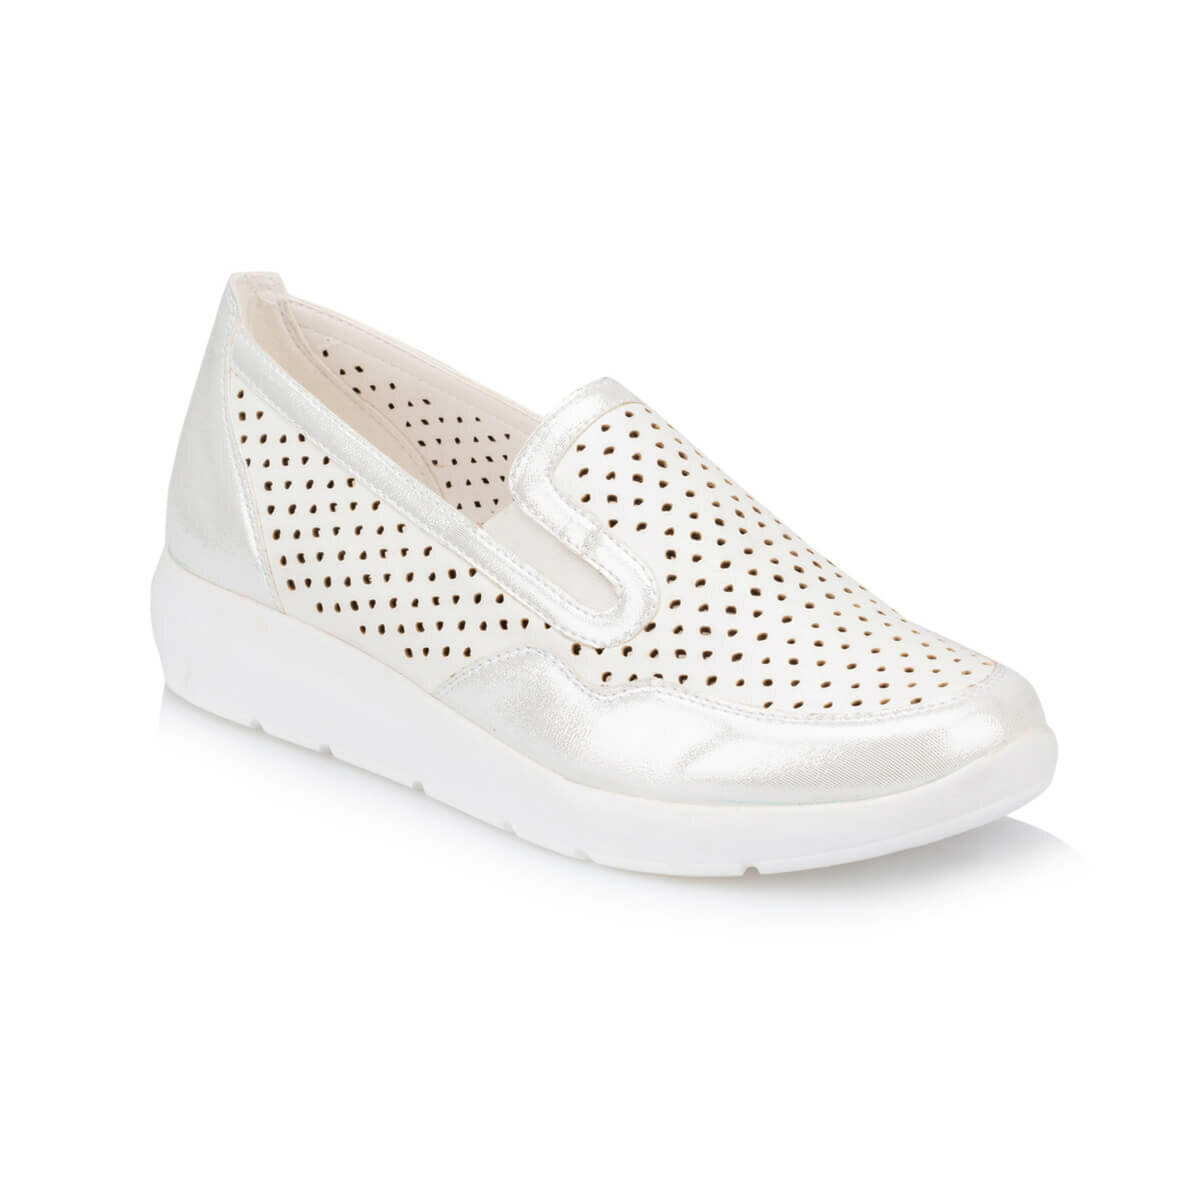 FLO TRV910027 White Women 'S Shoes Polaris